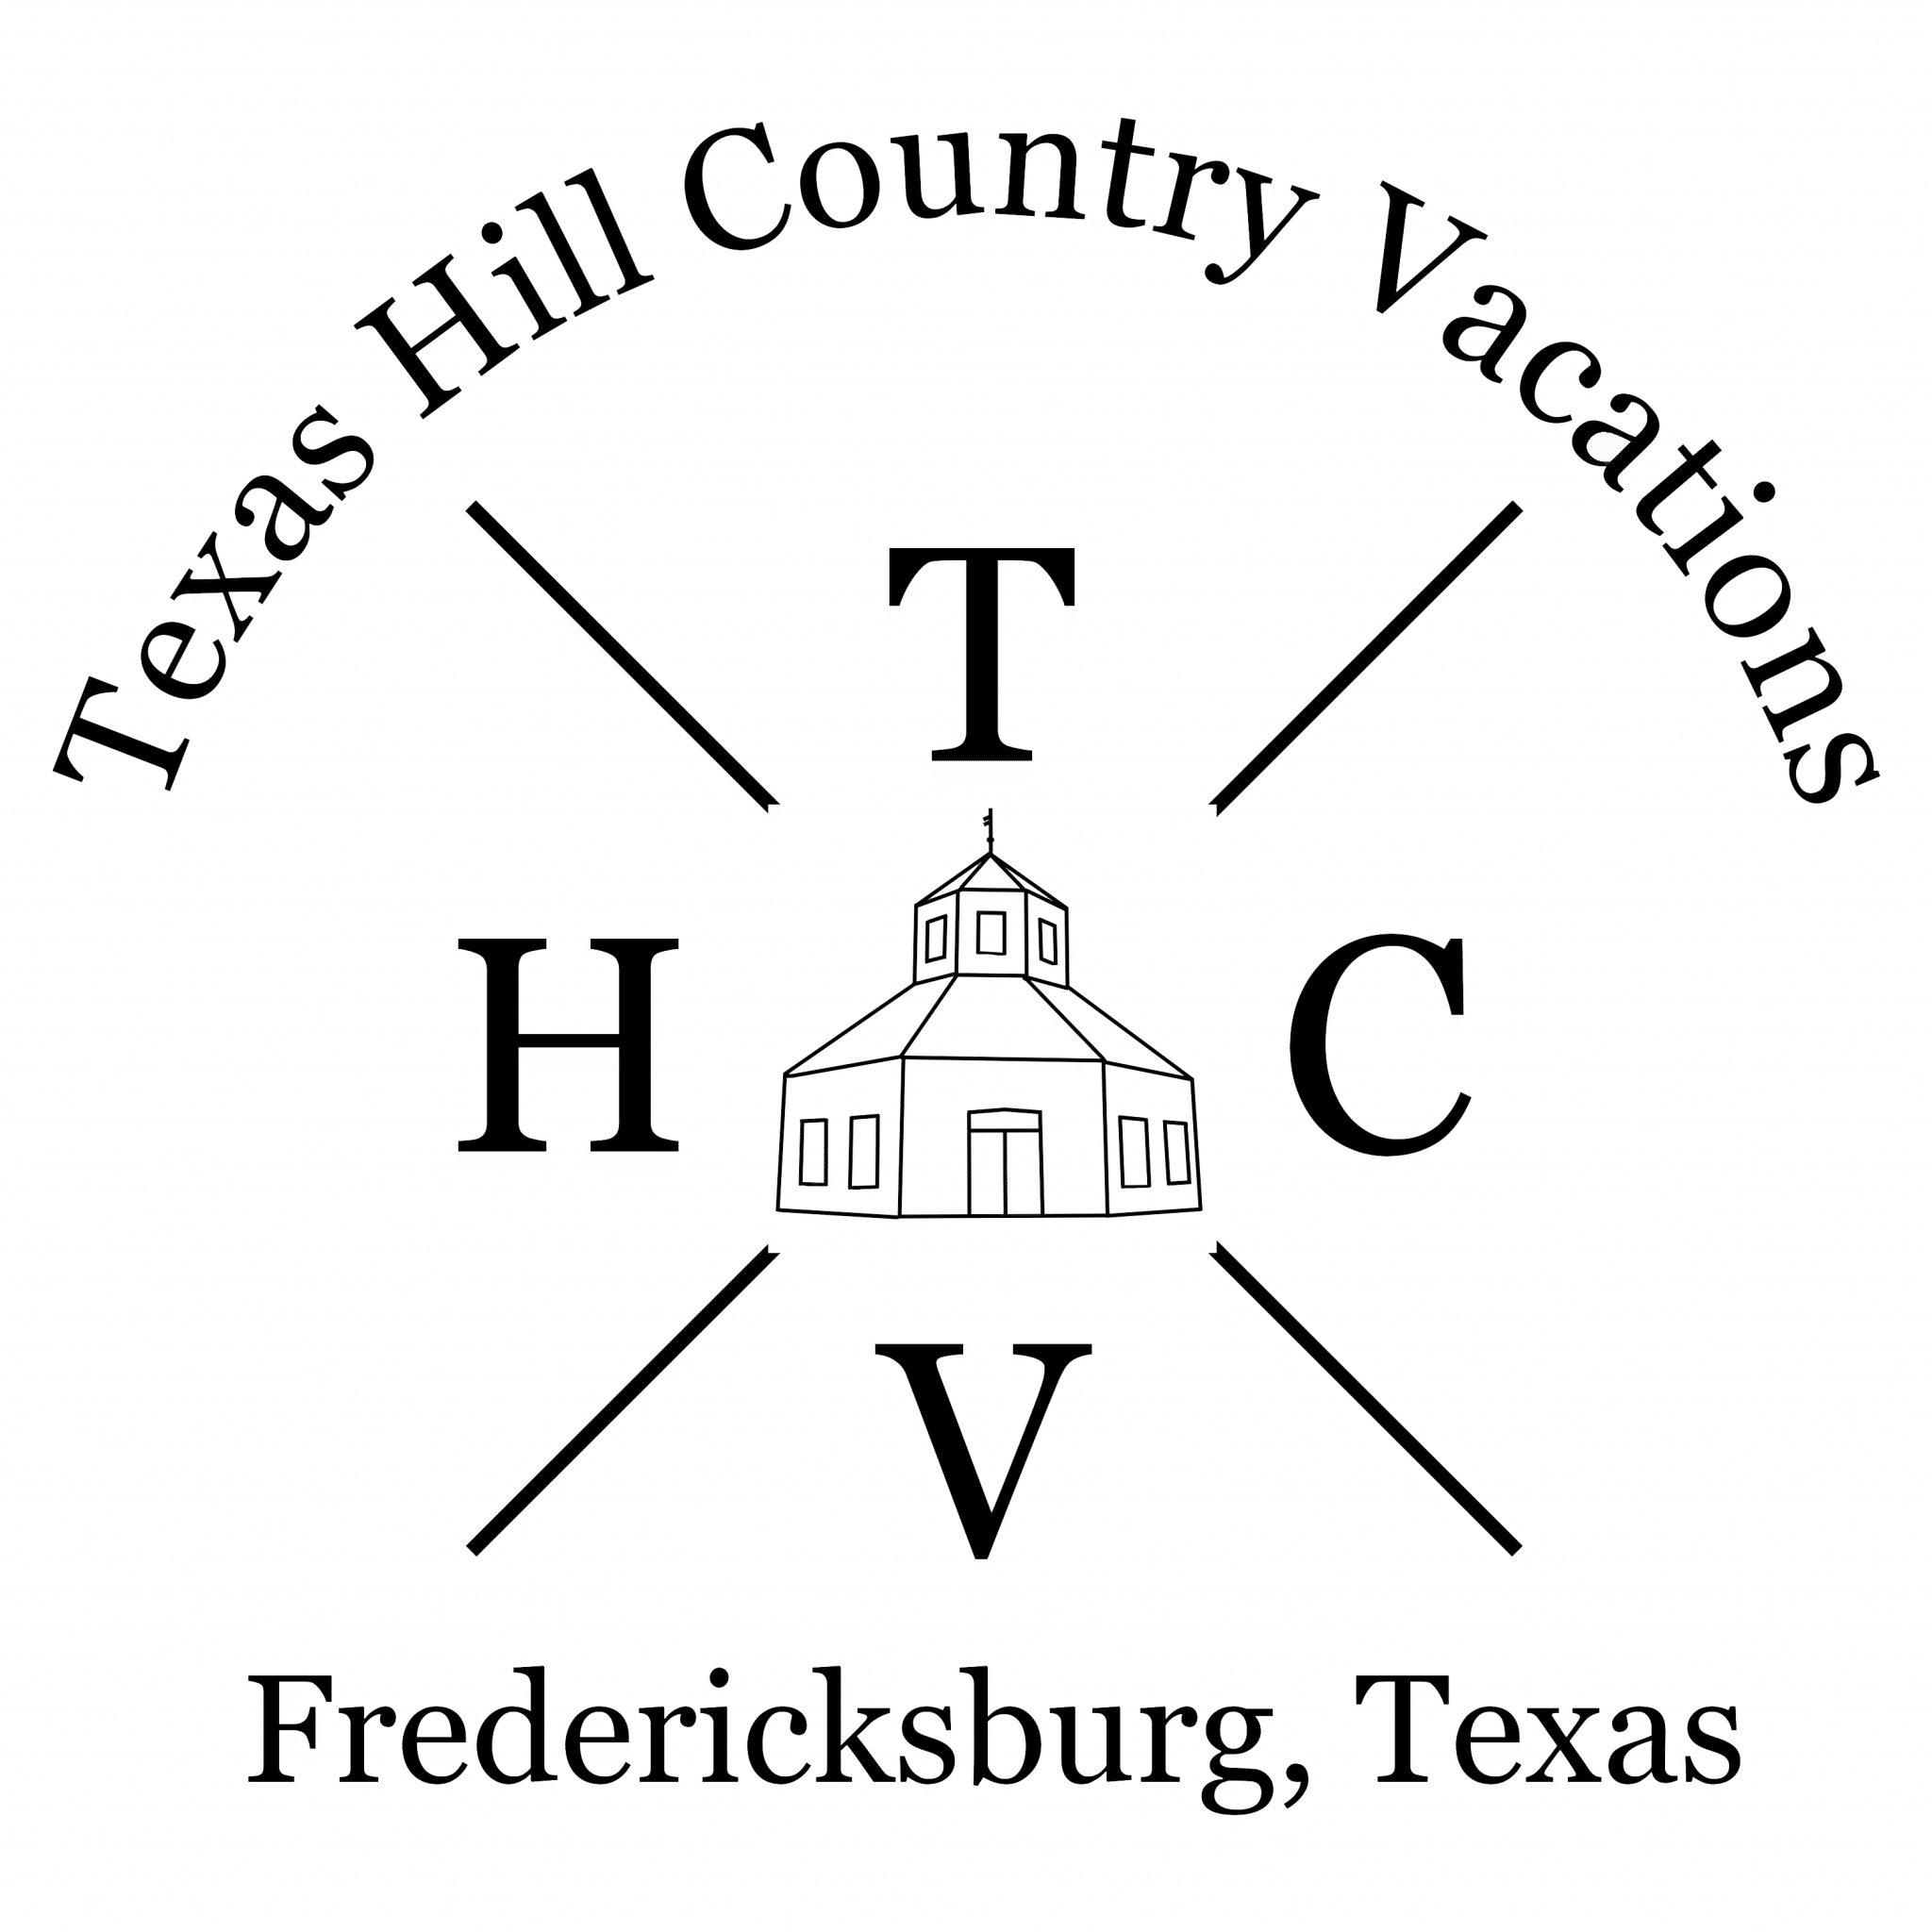 Texas Hill Country Vacations - Fredericksburg